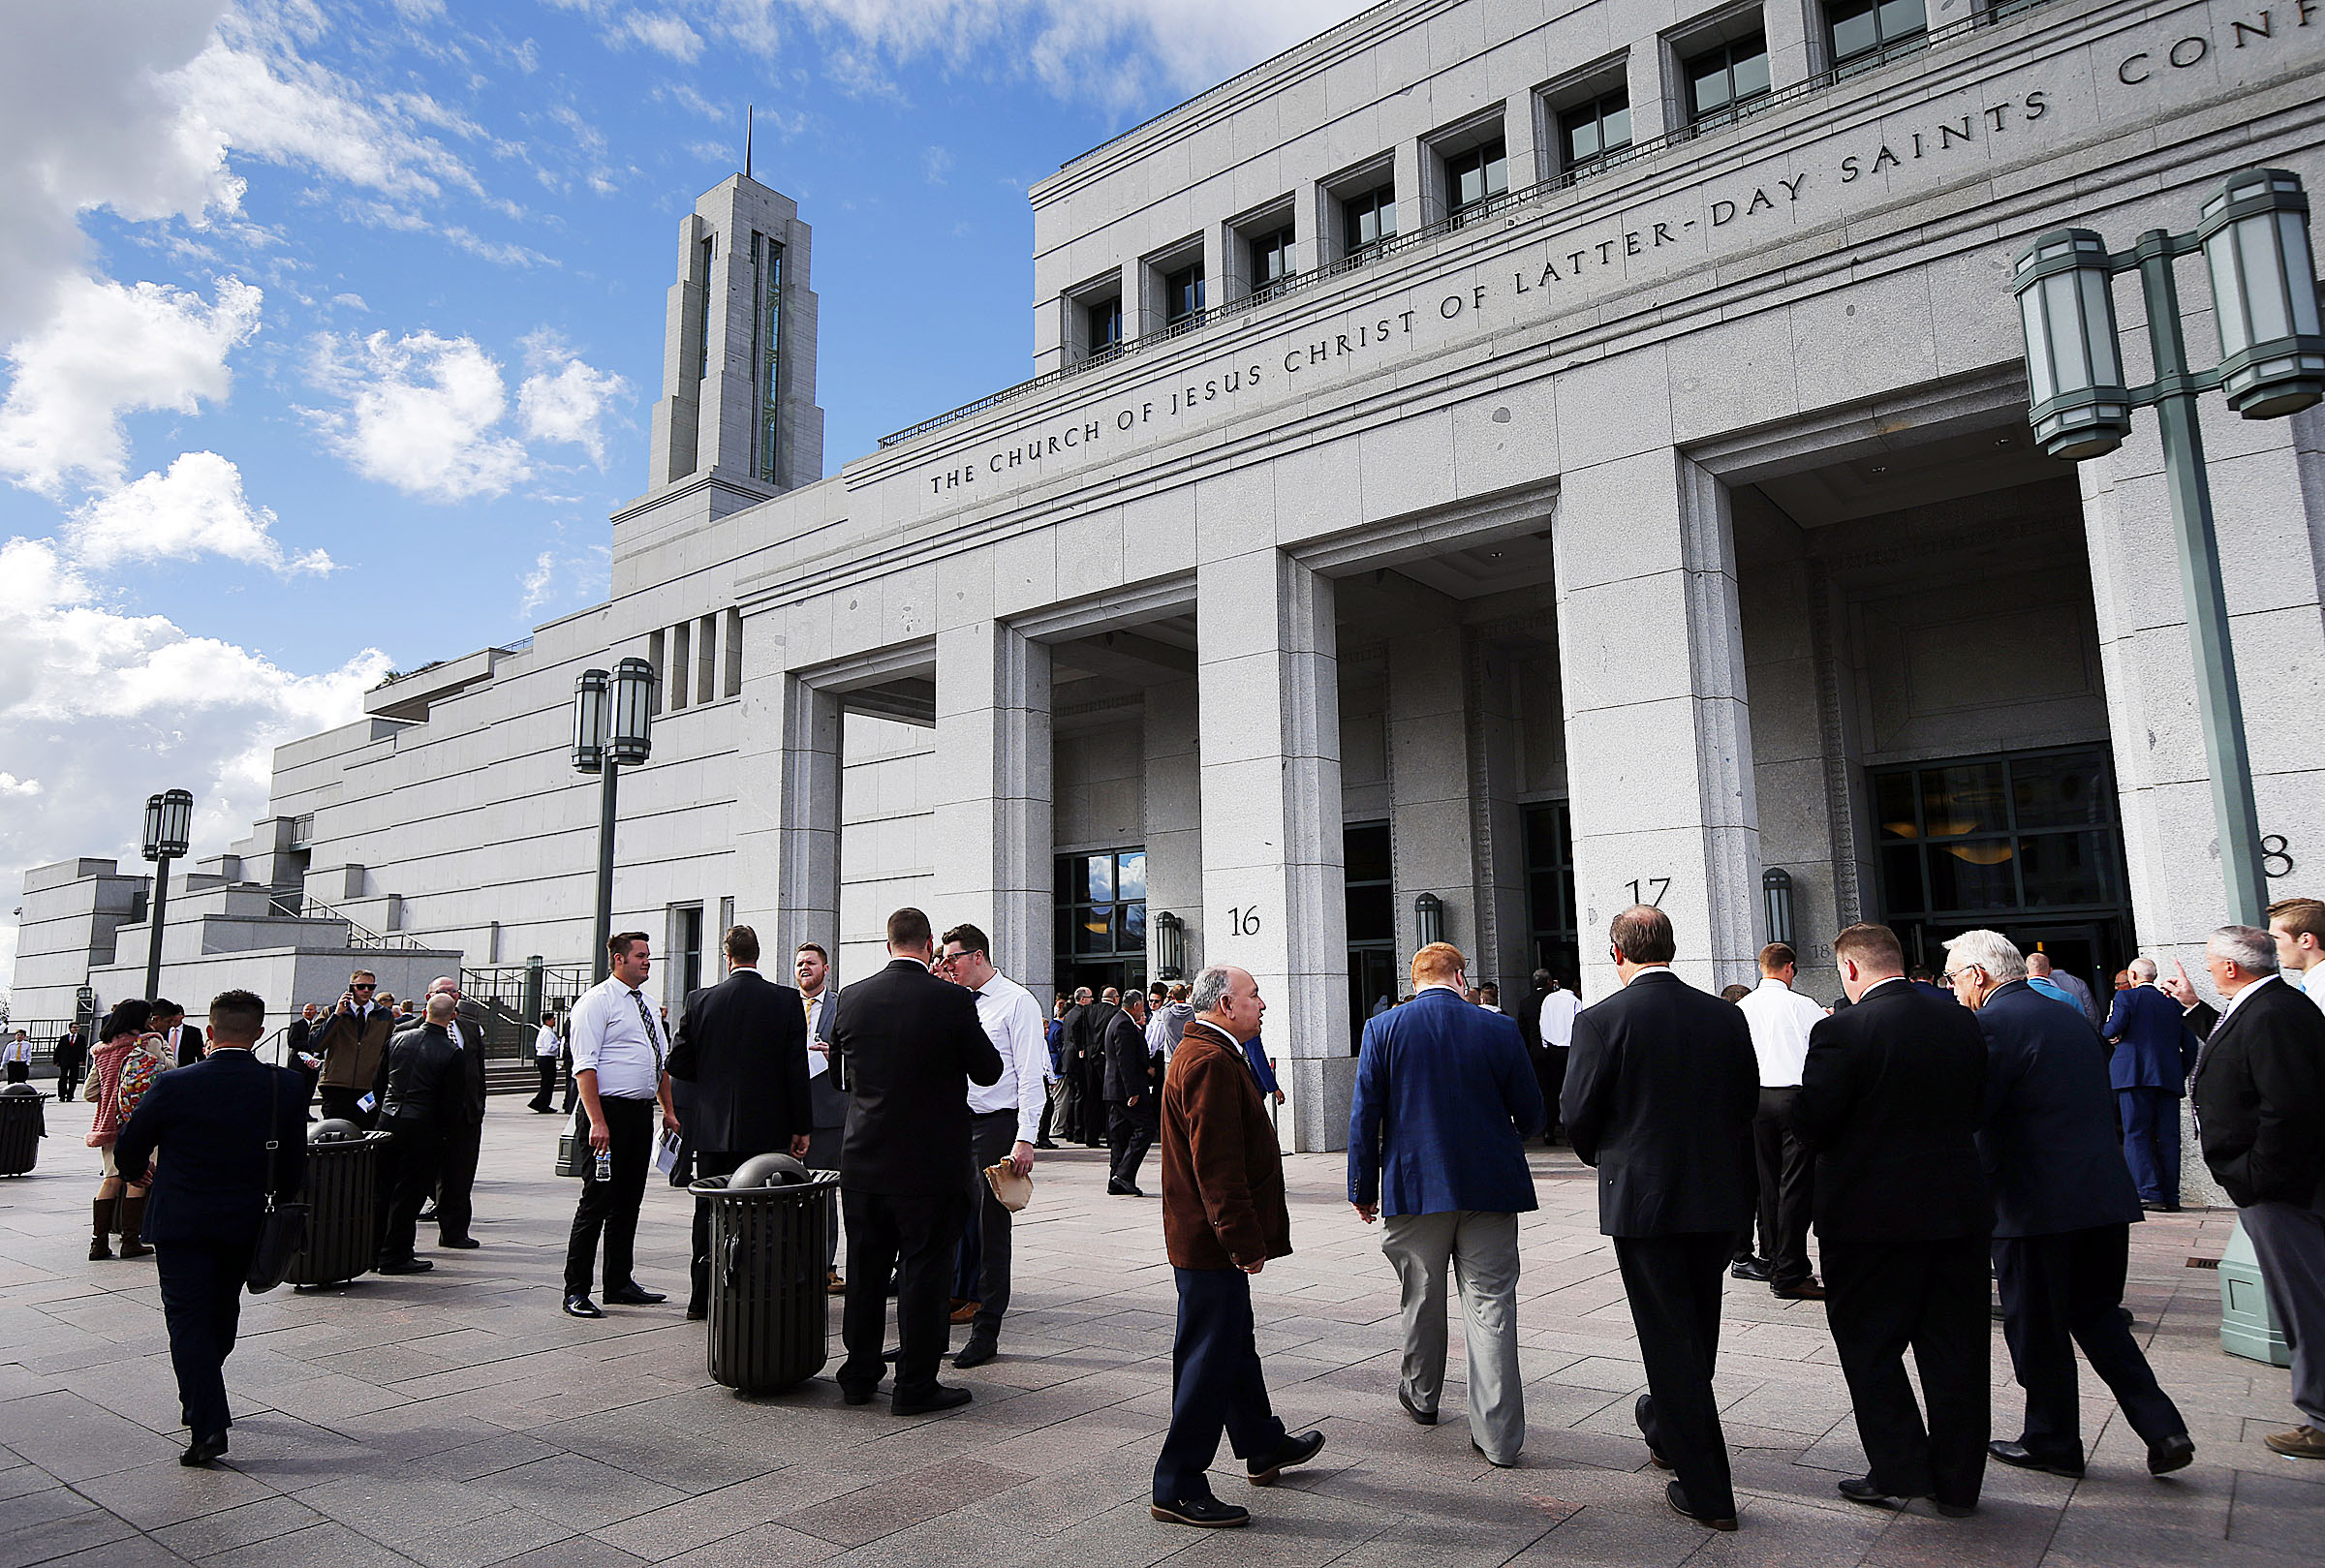 Conferencegoers arrive for Saturday's priesthood session of the 189th Annual General Conference of The Church of Jesus Christ of Latter-day Saints in the Conference Center in Salt Lake City on Saturday, April 6, 2019.